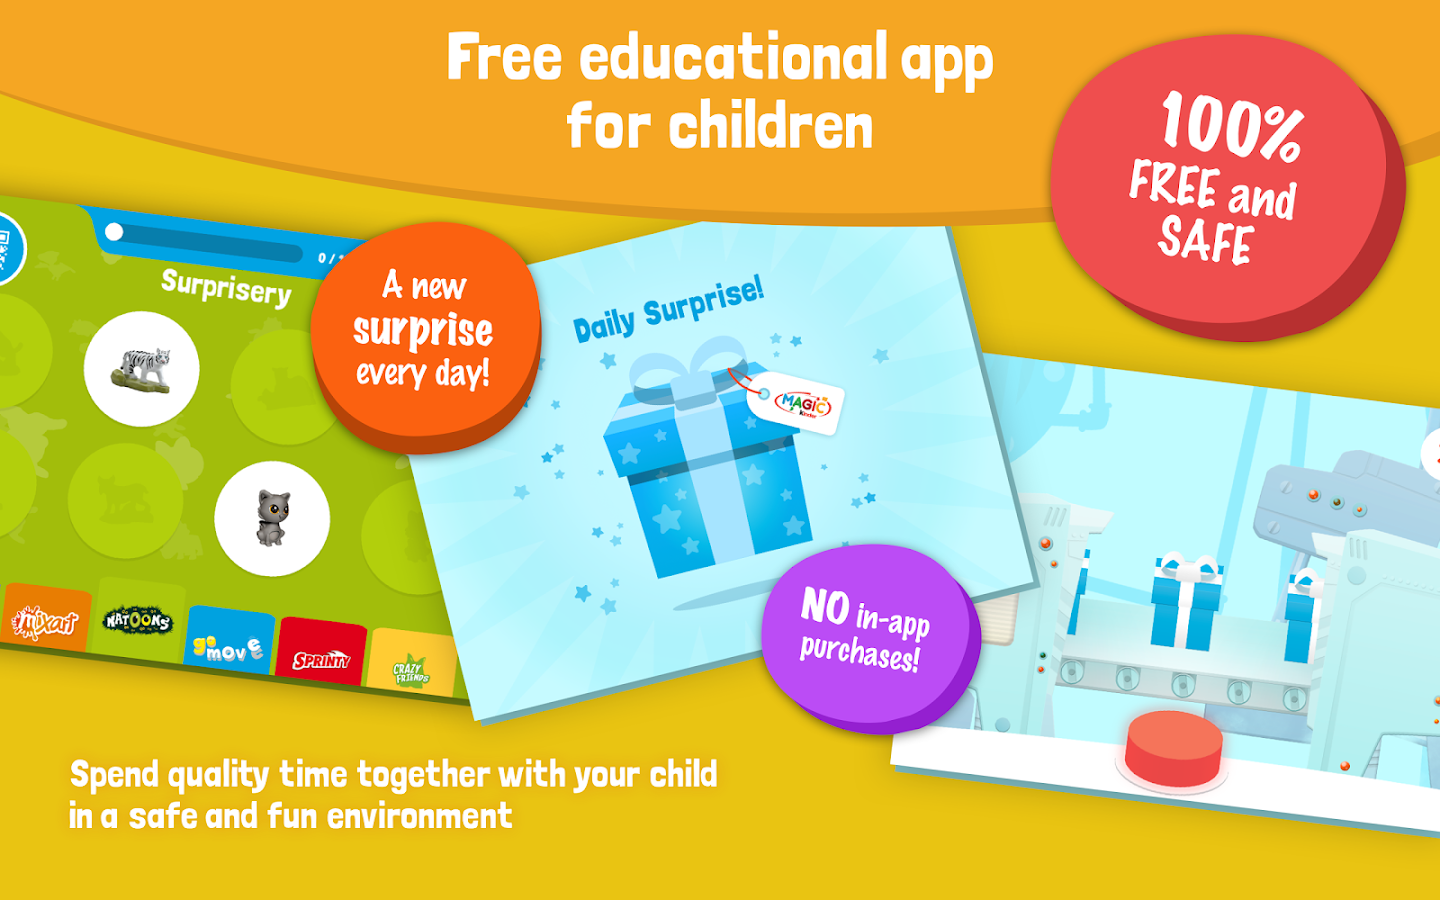 Magic kinder free kids games android apps on google play - Kinderapps gratis ...